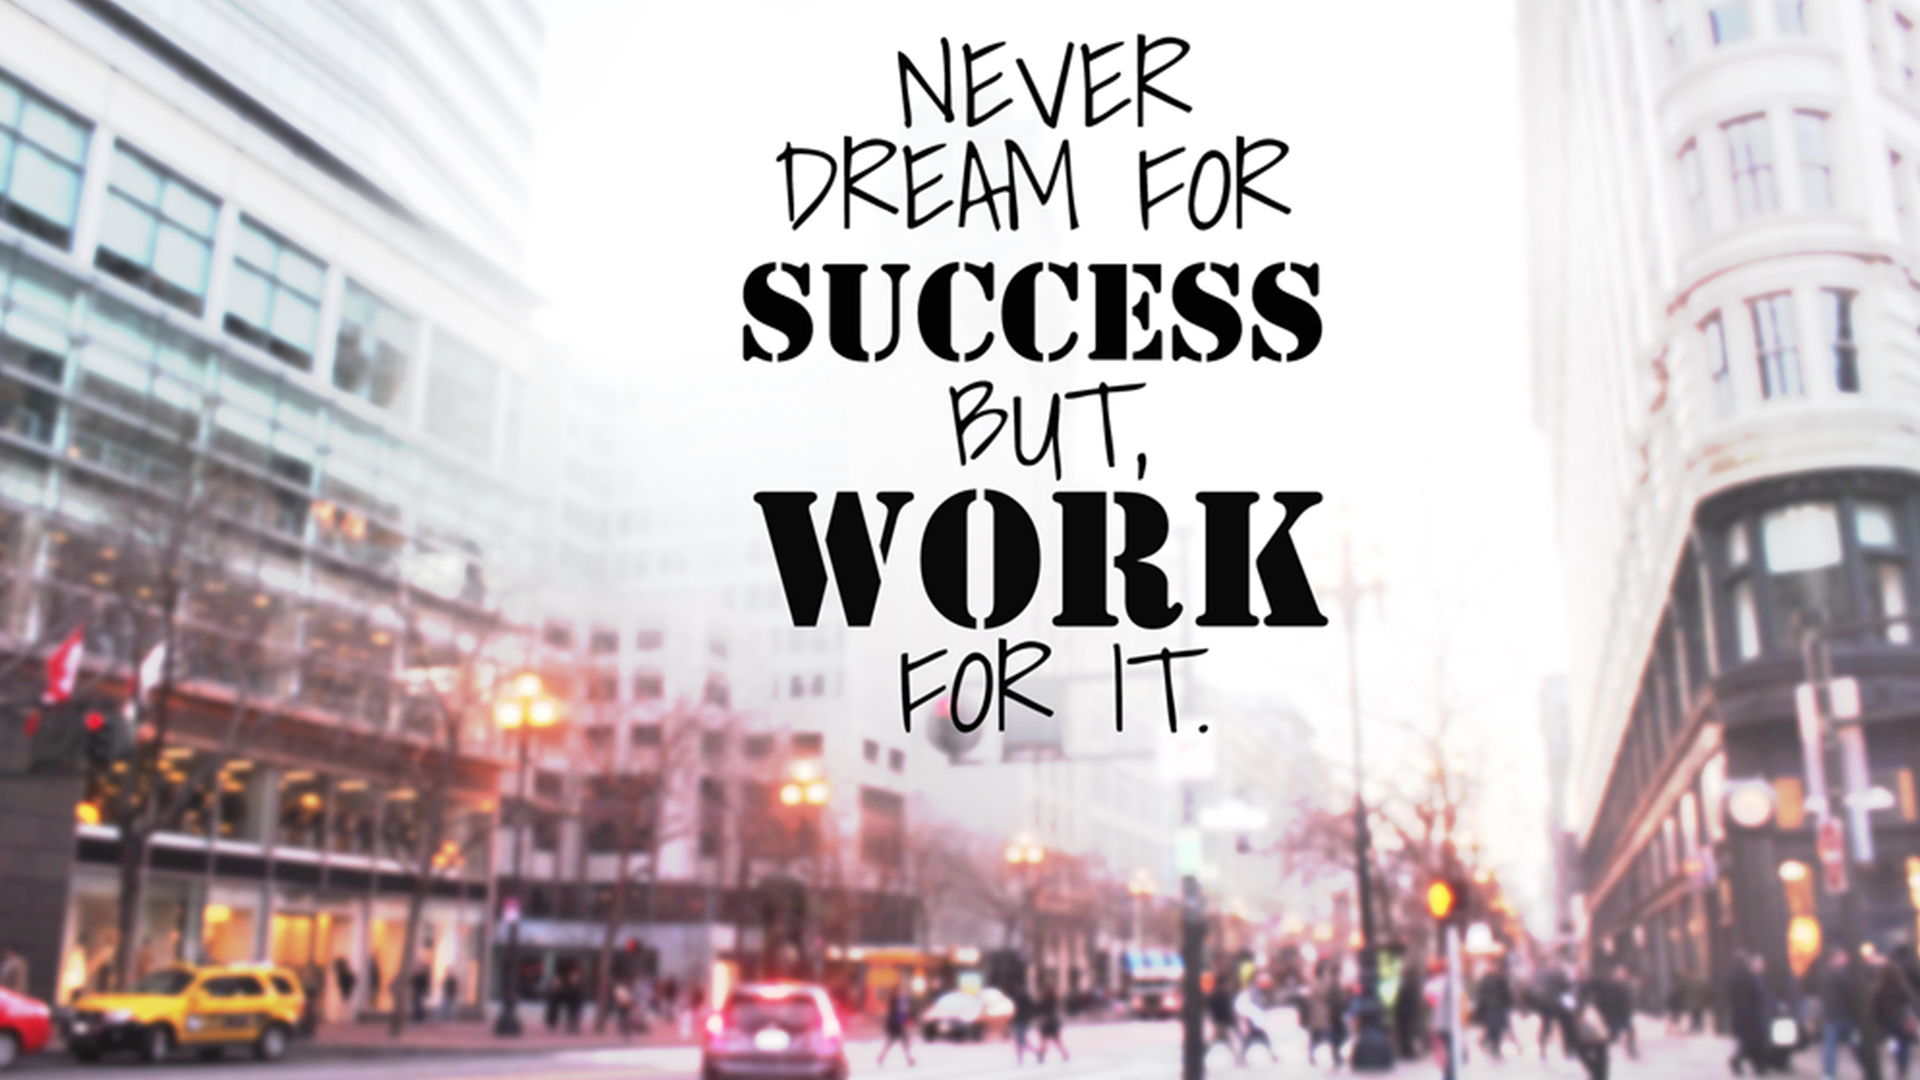 Never Dream For Success But Work For It